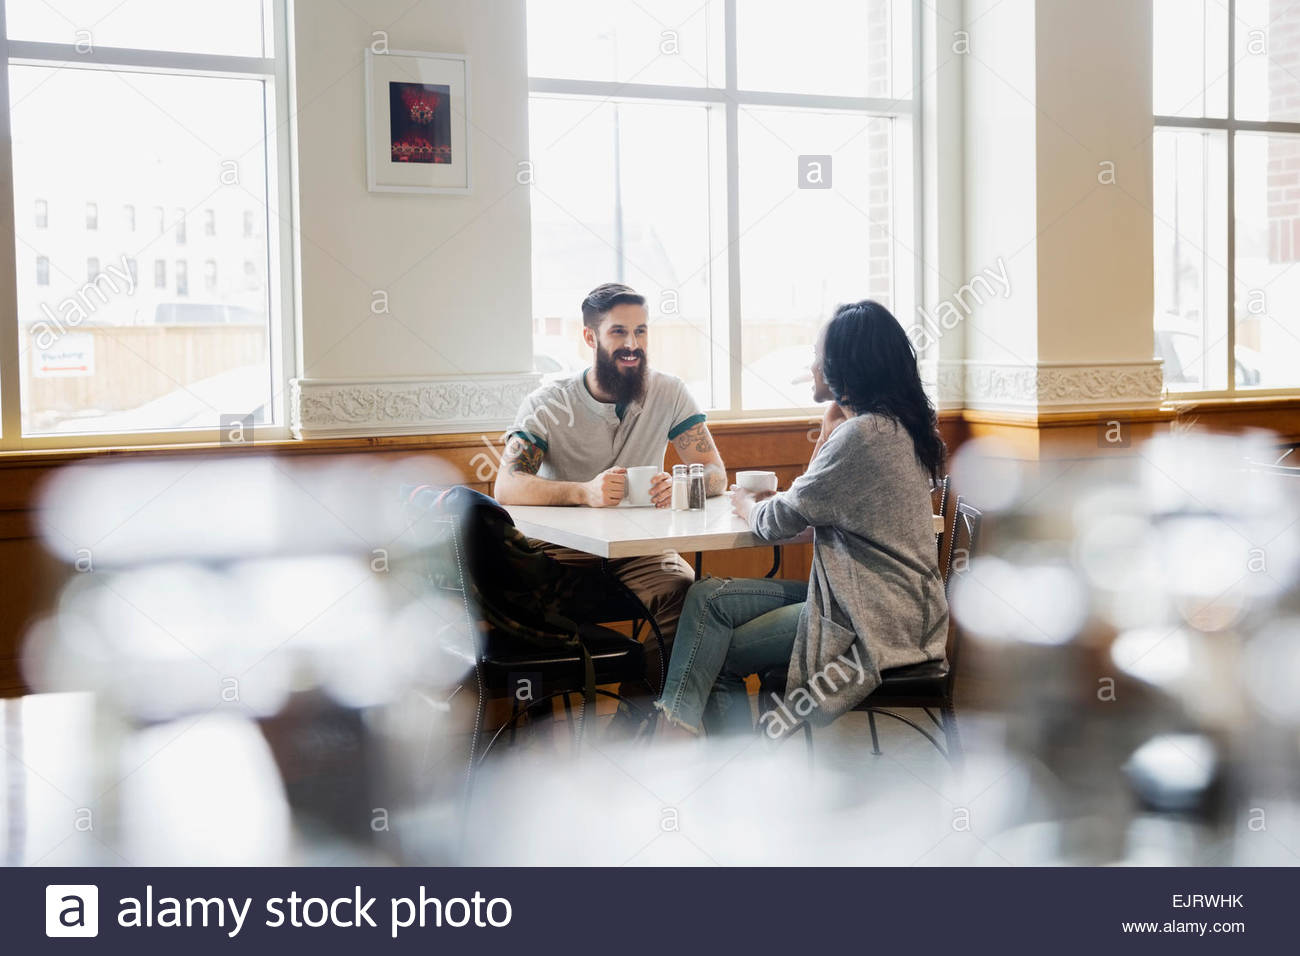 Couple drinking coffee at cafe table Photo Stock